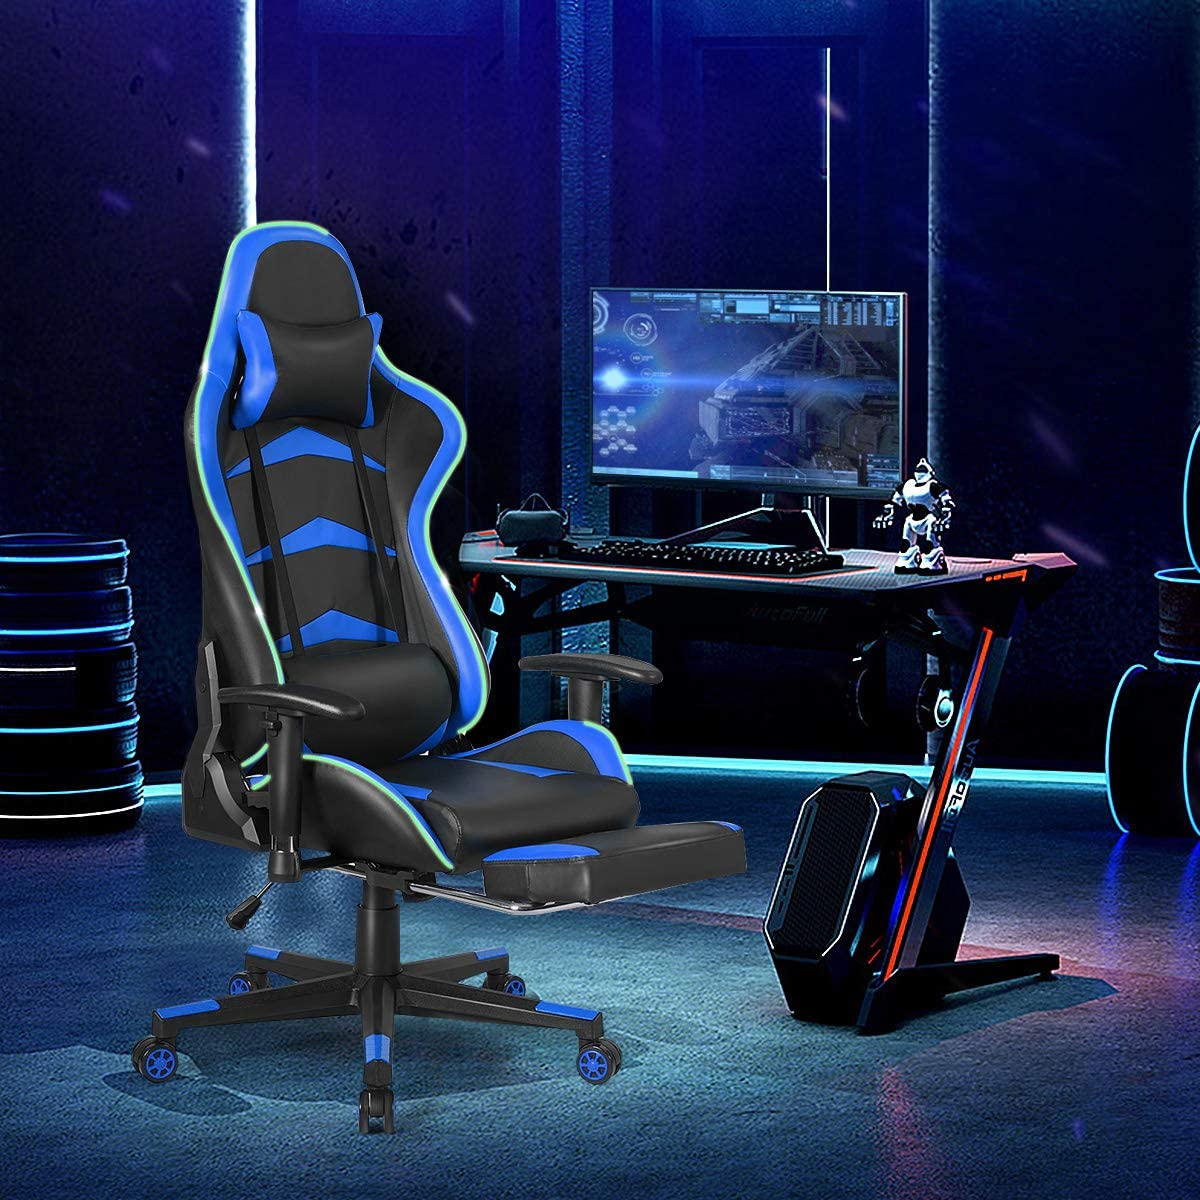 Swivel Rolling Ergonomic Computer Chair Headrest Lumbar Support Cushion Footrest Red PC Racing Gamer Chair Executive Office Chair Backrest Adjustable Armrest GOFLAME Gaming Chair with LED Light